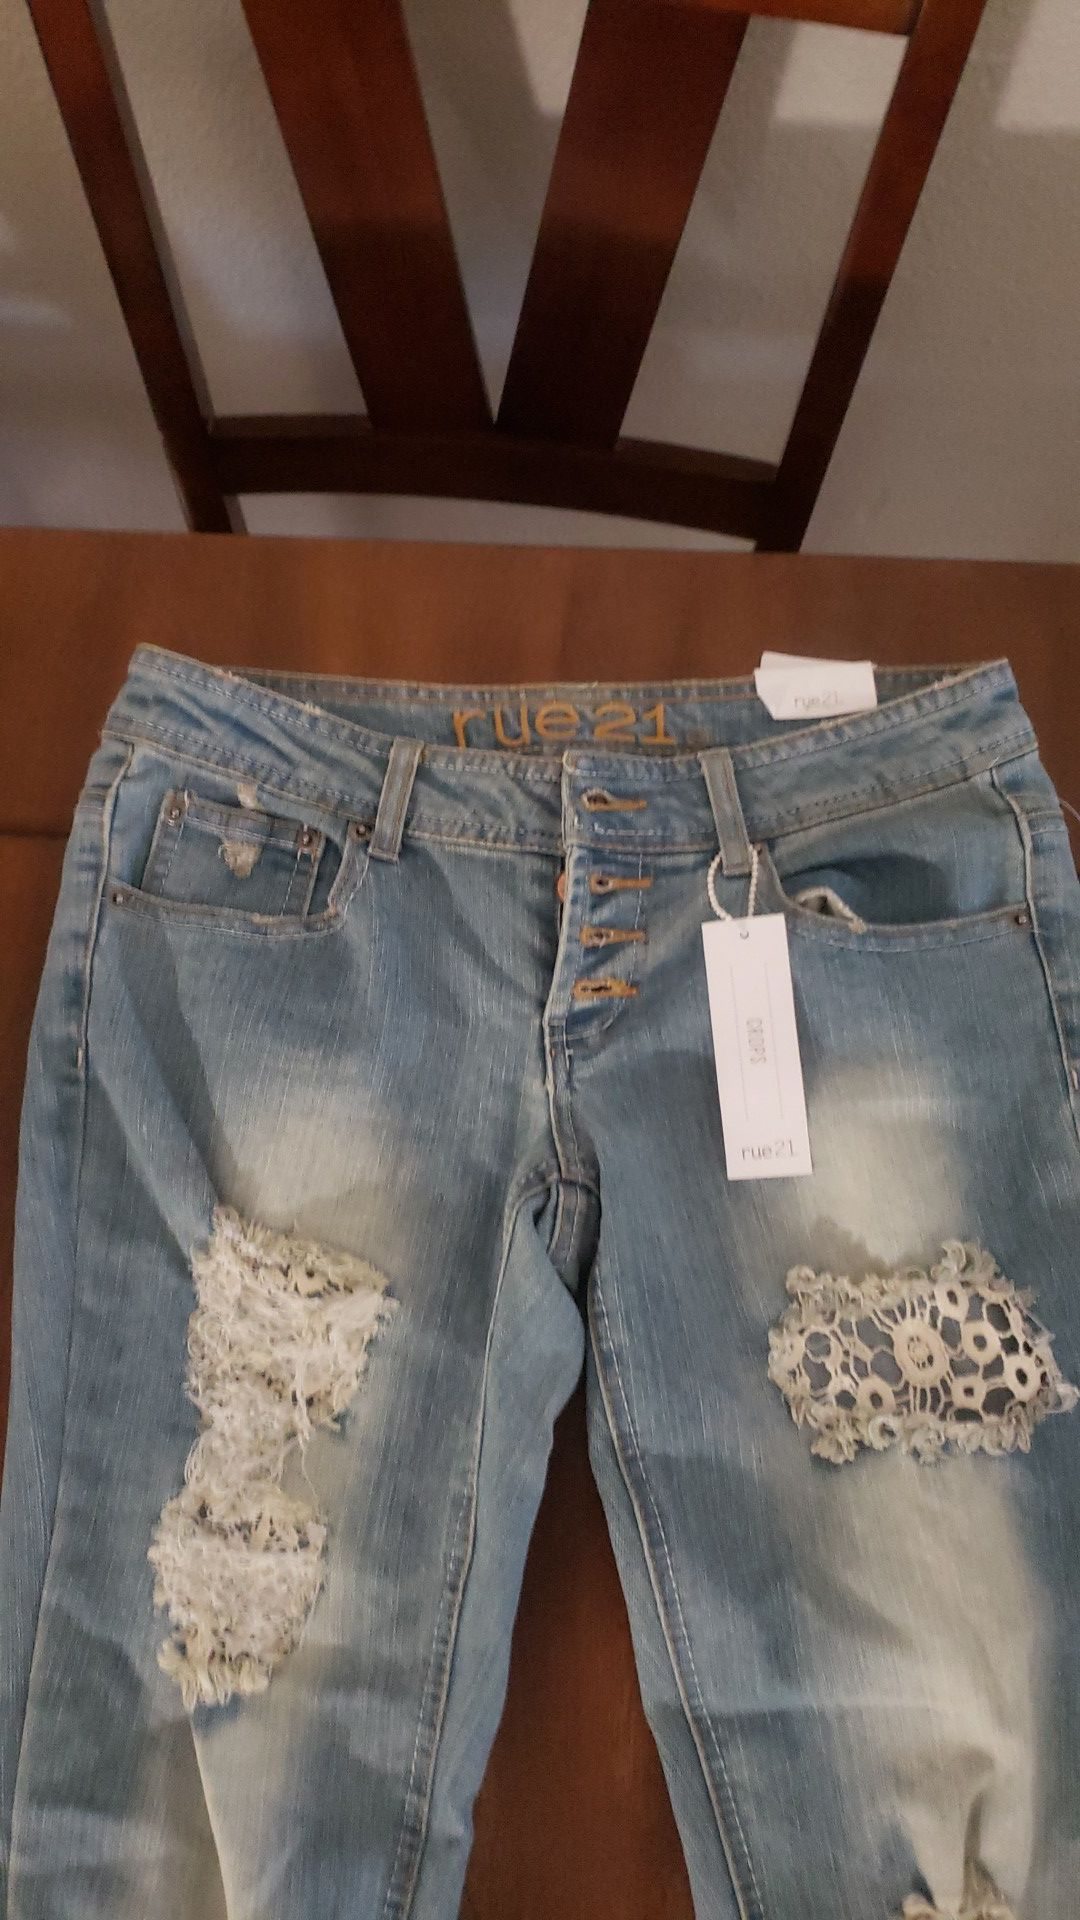 New rue 21 cropped jeans. Size 1 / 2